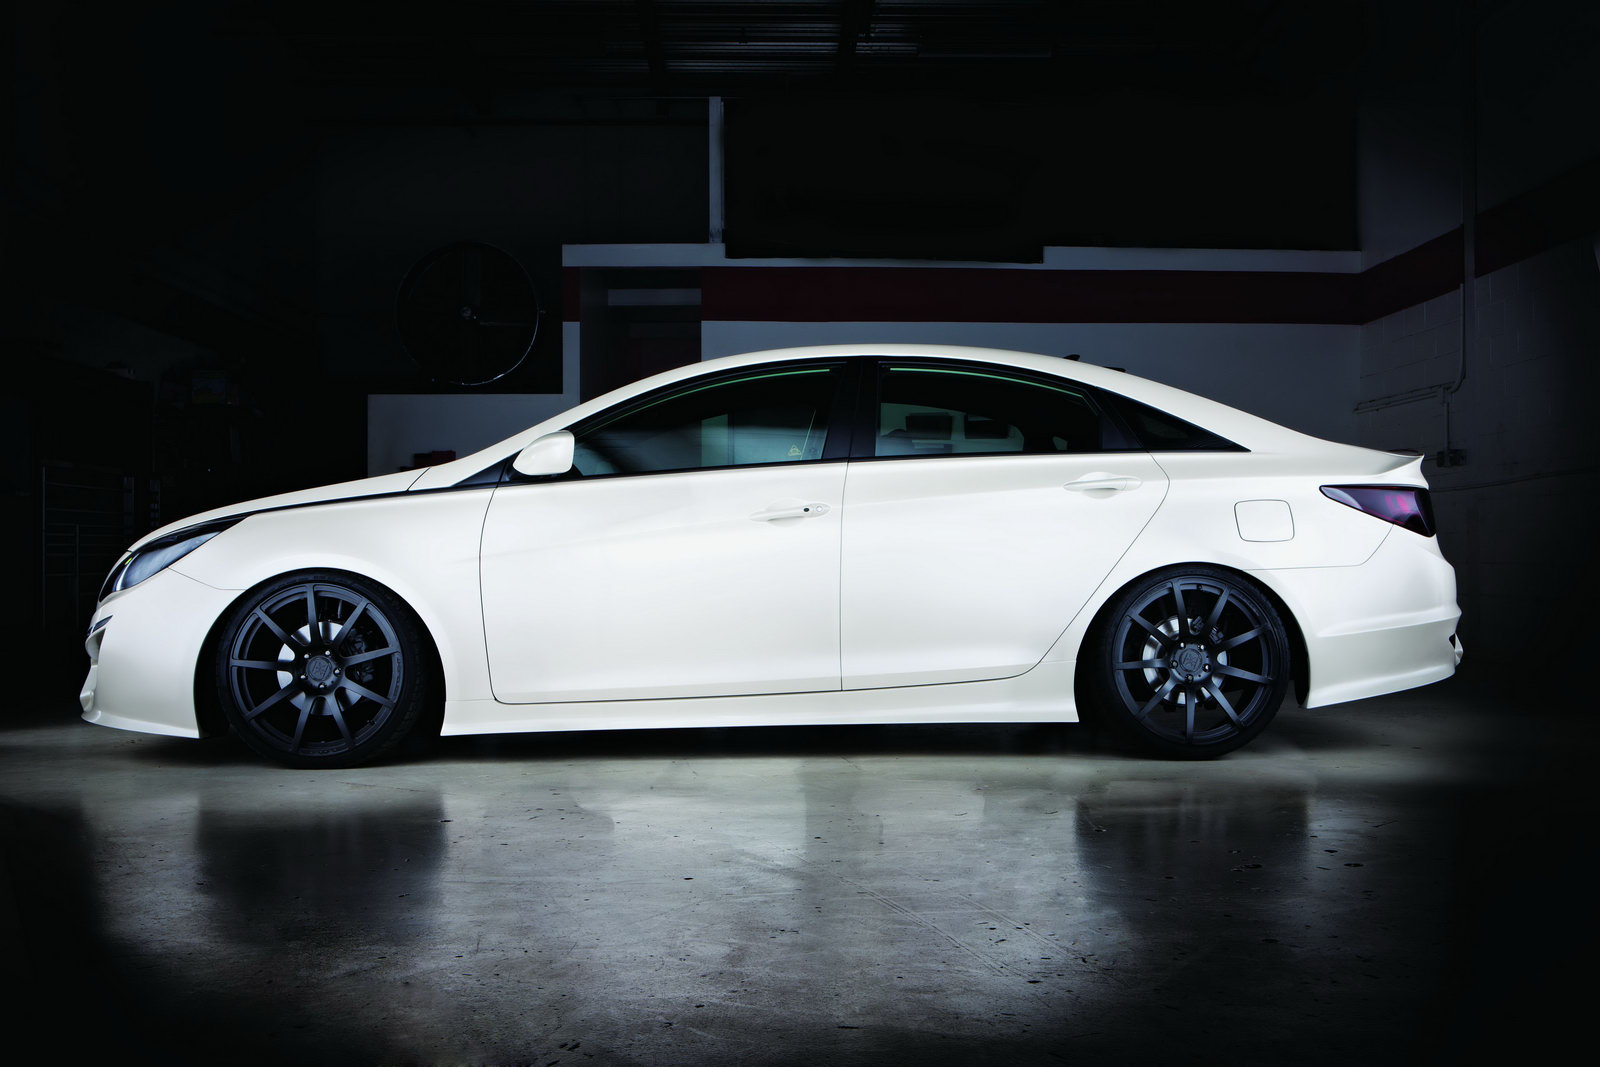 2010 Sema  Custom Hyundai Sonata Turbo By Rides And 0-60 Magazines